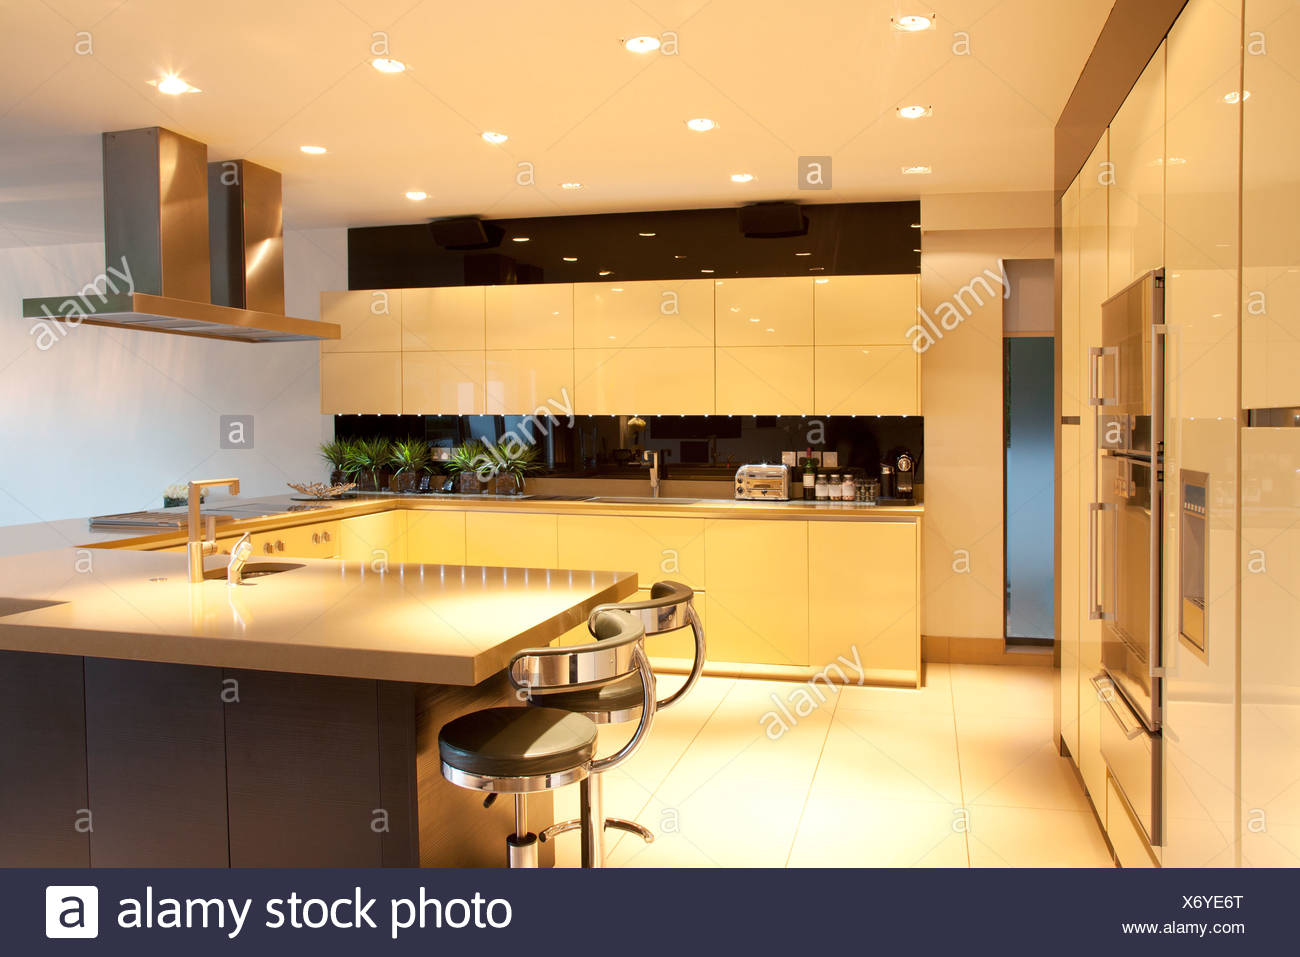 Kitchen Cupboard Uplighters Contemporary Lighting Stock Photos Contemporary Lighting Stock